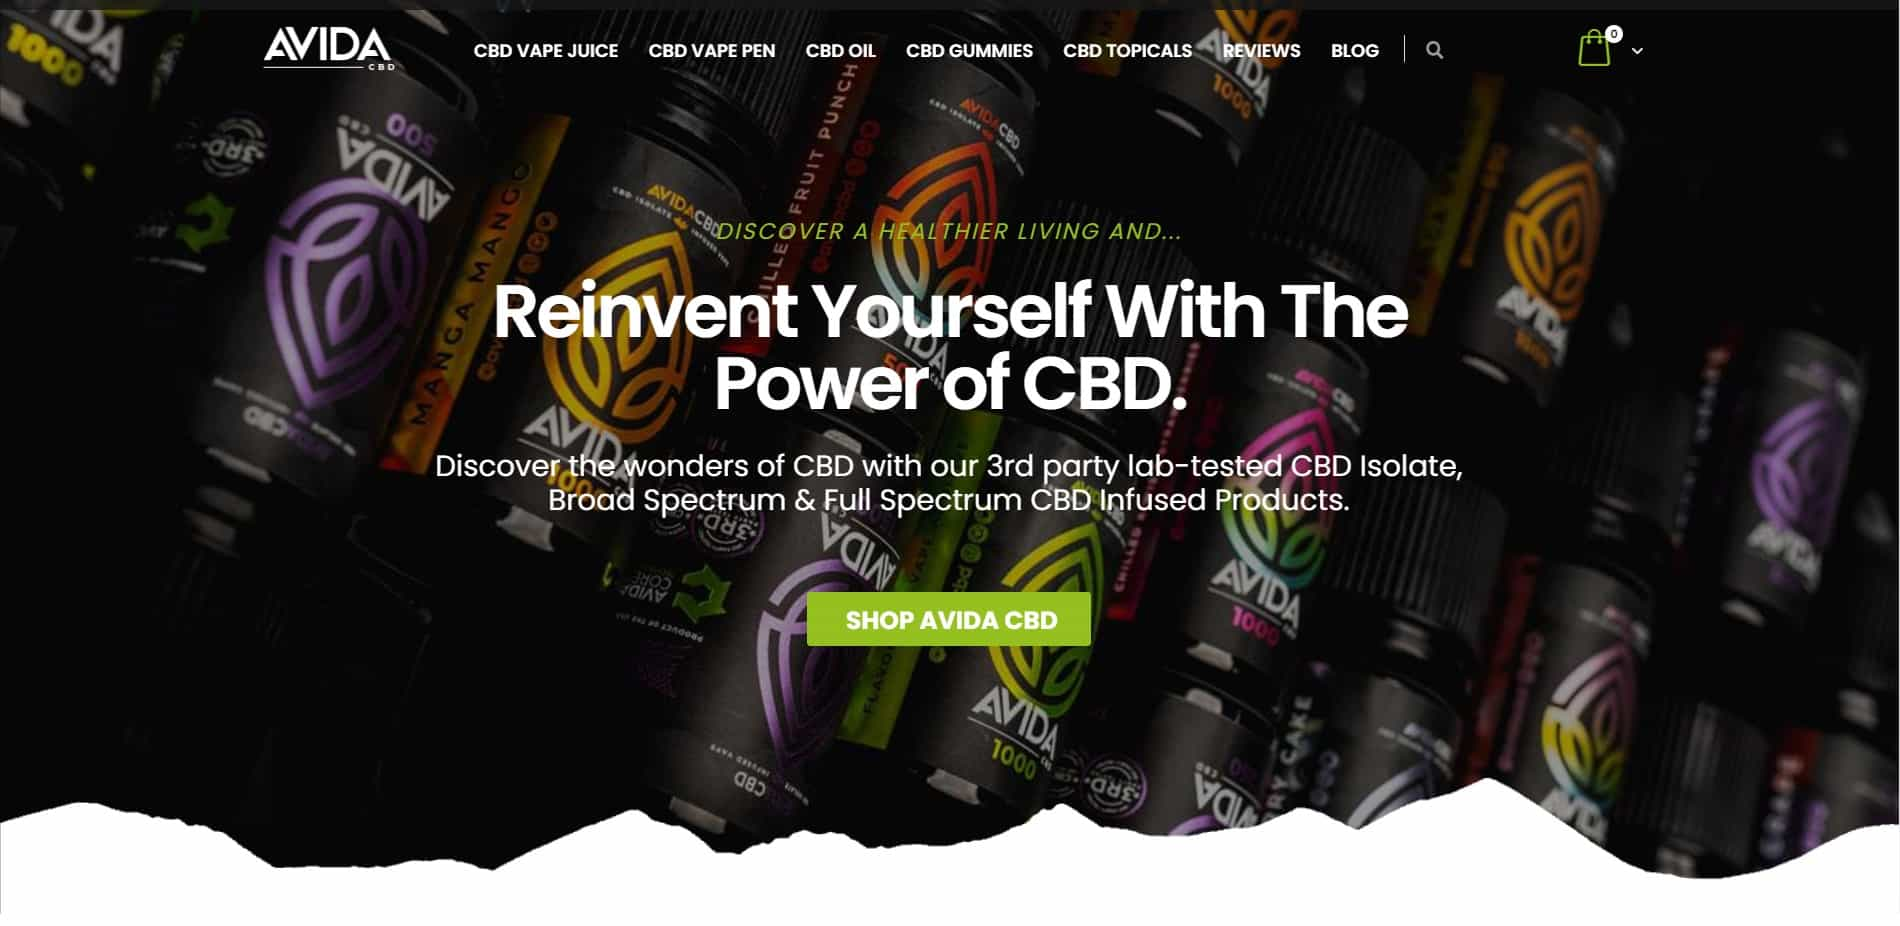 Avida CBD official website